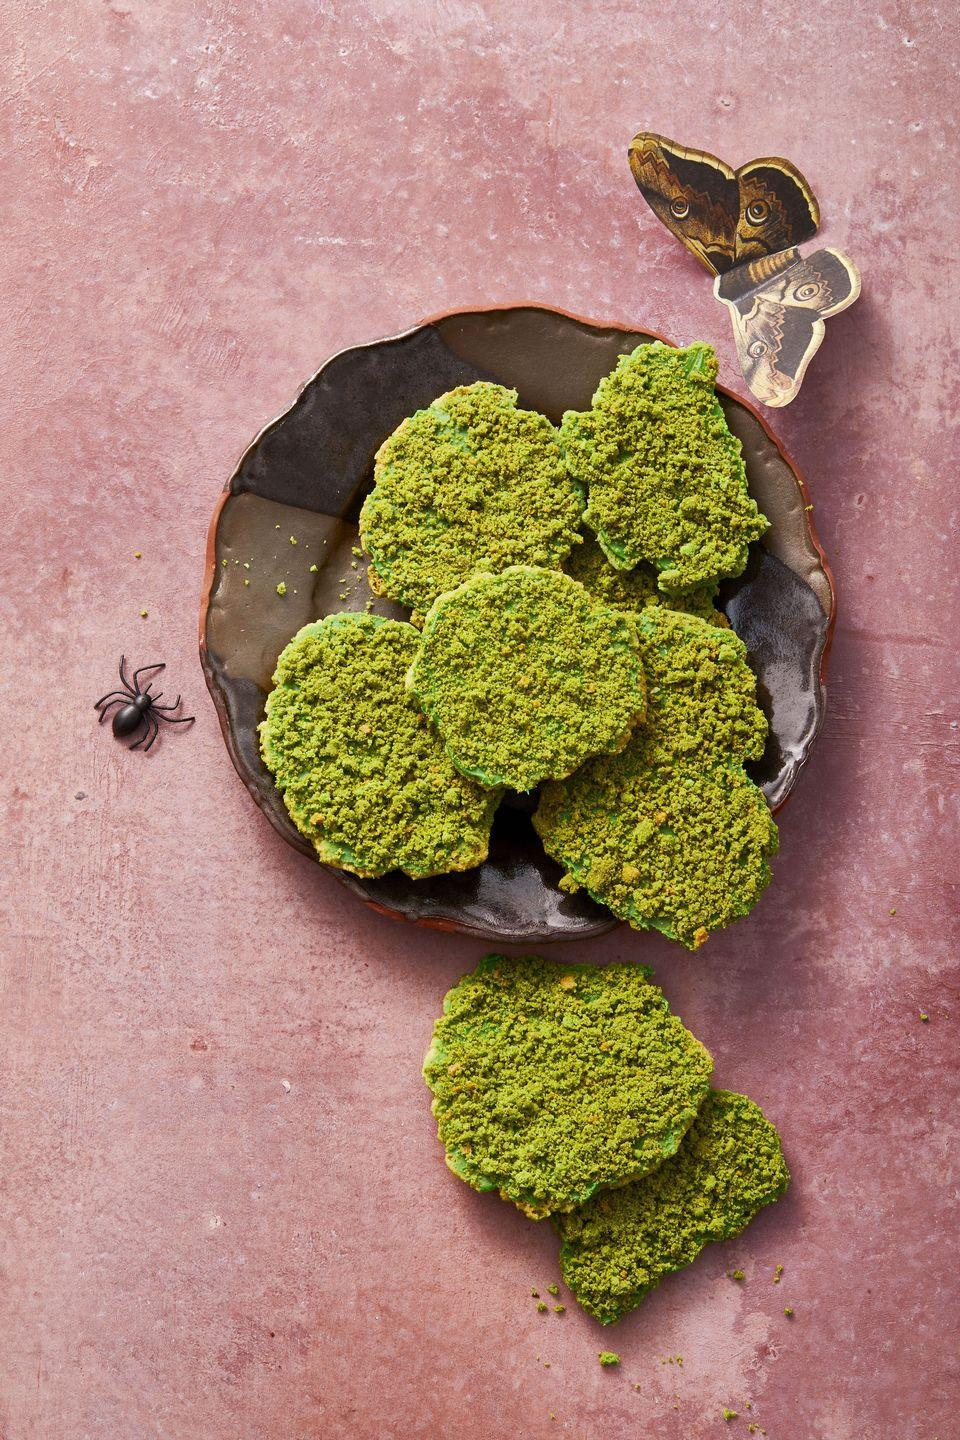 """<p>Top sugar cookies with green frosting and crumbled graham crackers for a unique Halloween treat.</p><p><em><a href=""""https://www.goodhousekeeping.com/food-recipes/a34330679/moss-cookies-recipe/"""" rel=""""nofollow noopener"""" target=""""_blank"""" data-ylk=""""slk:Get the recipe for Moss Cookies »"""" class=""""link rapid-noclick-resp"""">Get the recipe for Moss Cookies »</a></em> </p>"""